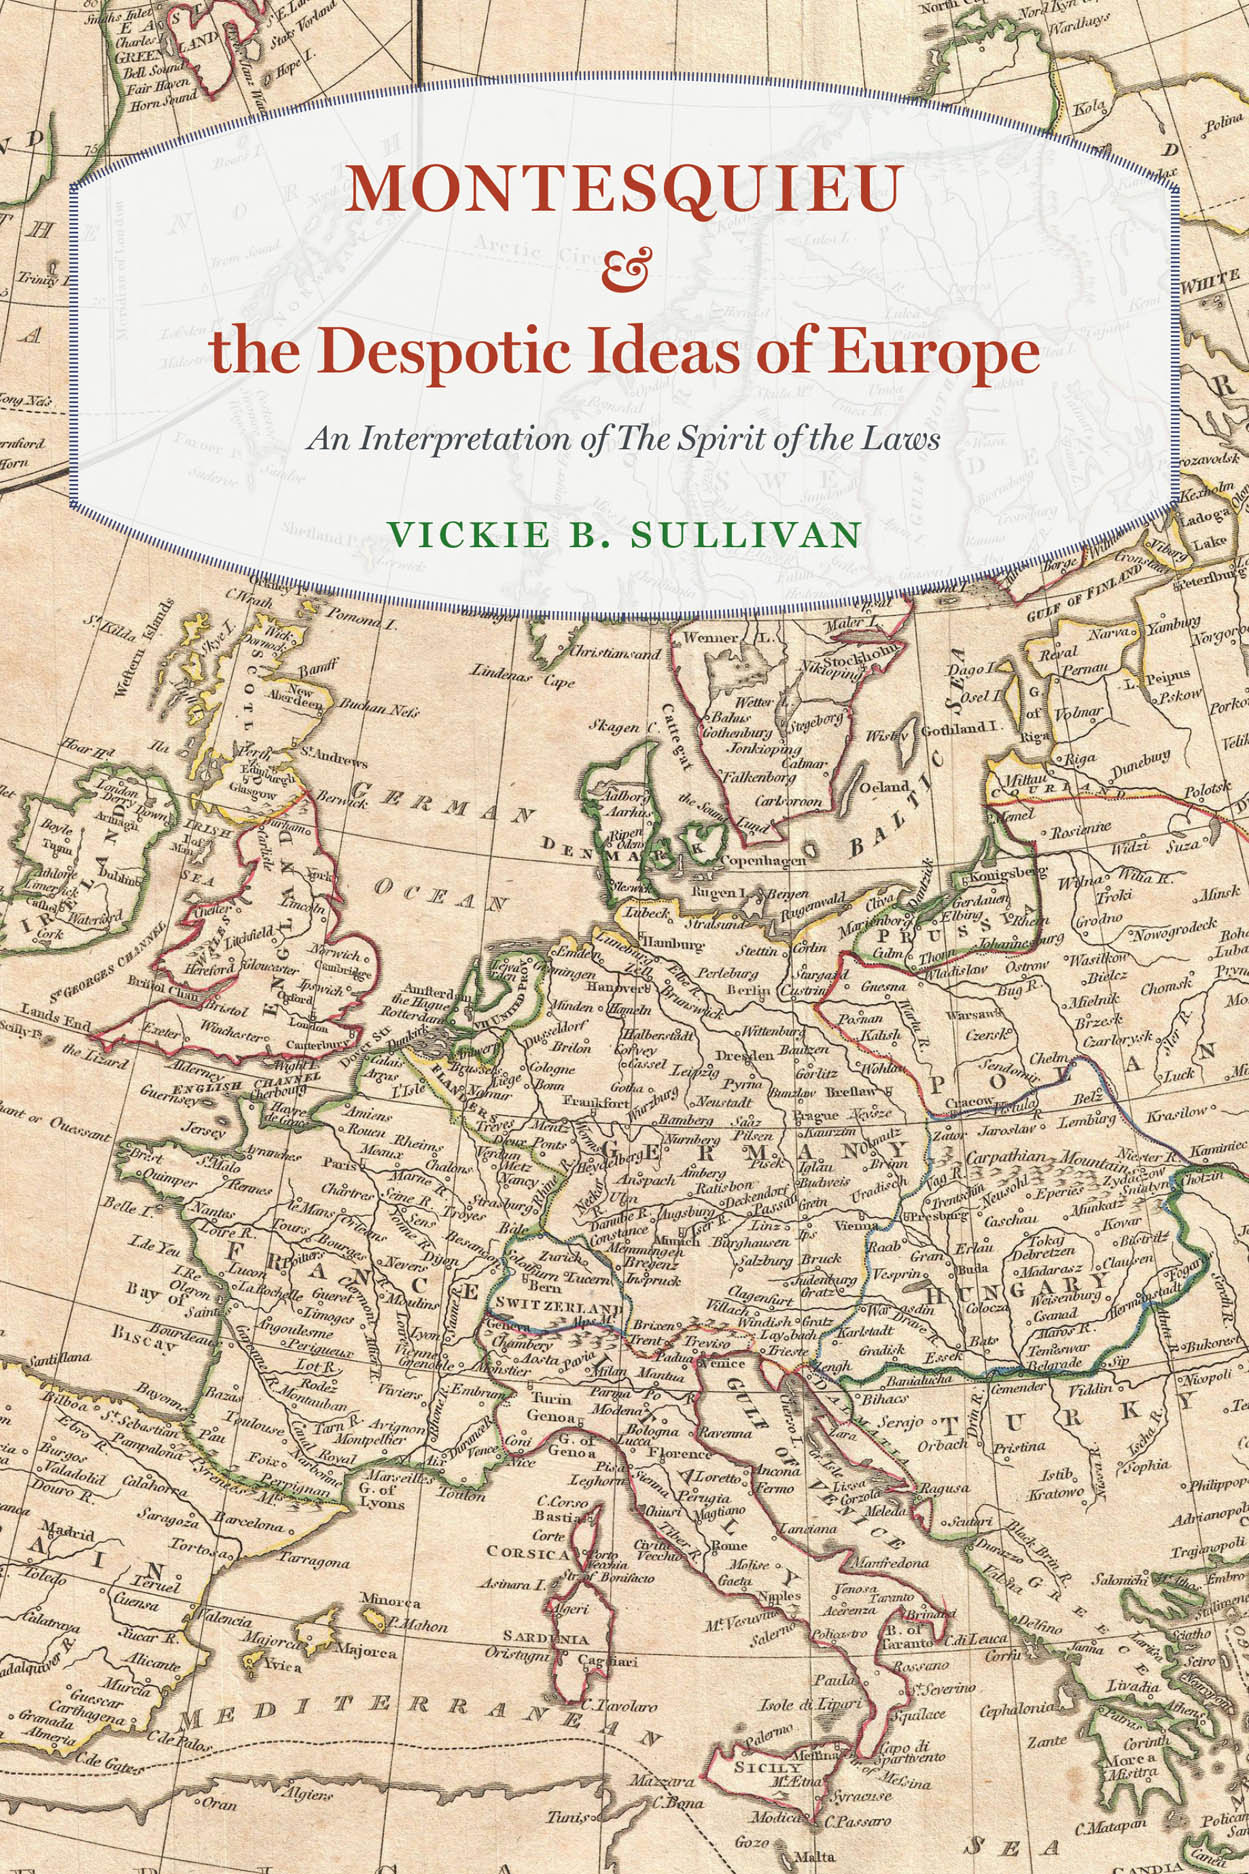 Montesquieu and the Despotic Ideas of Europe: An Interpretation of